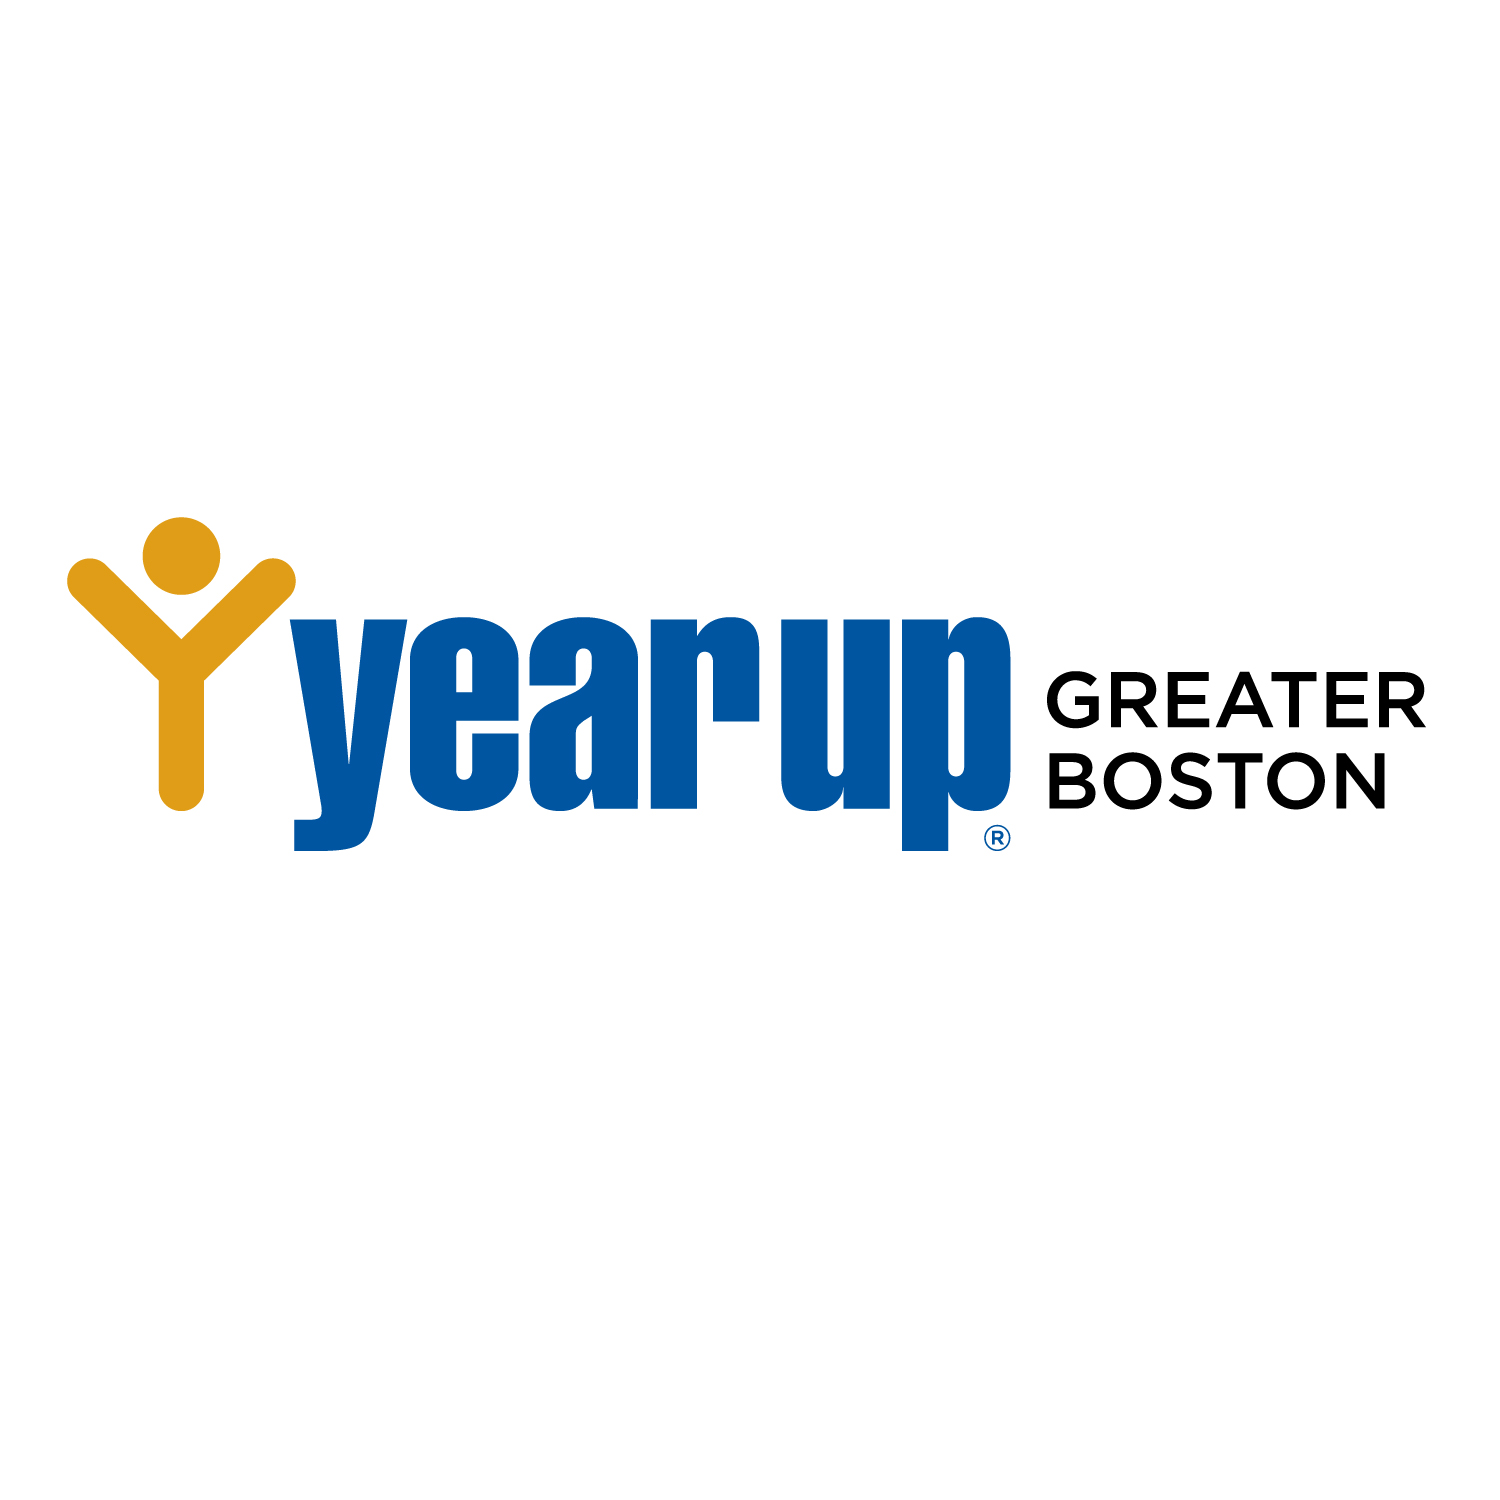 Year Up Greater Boston